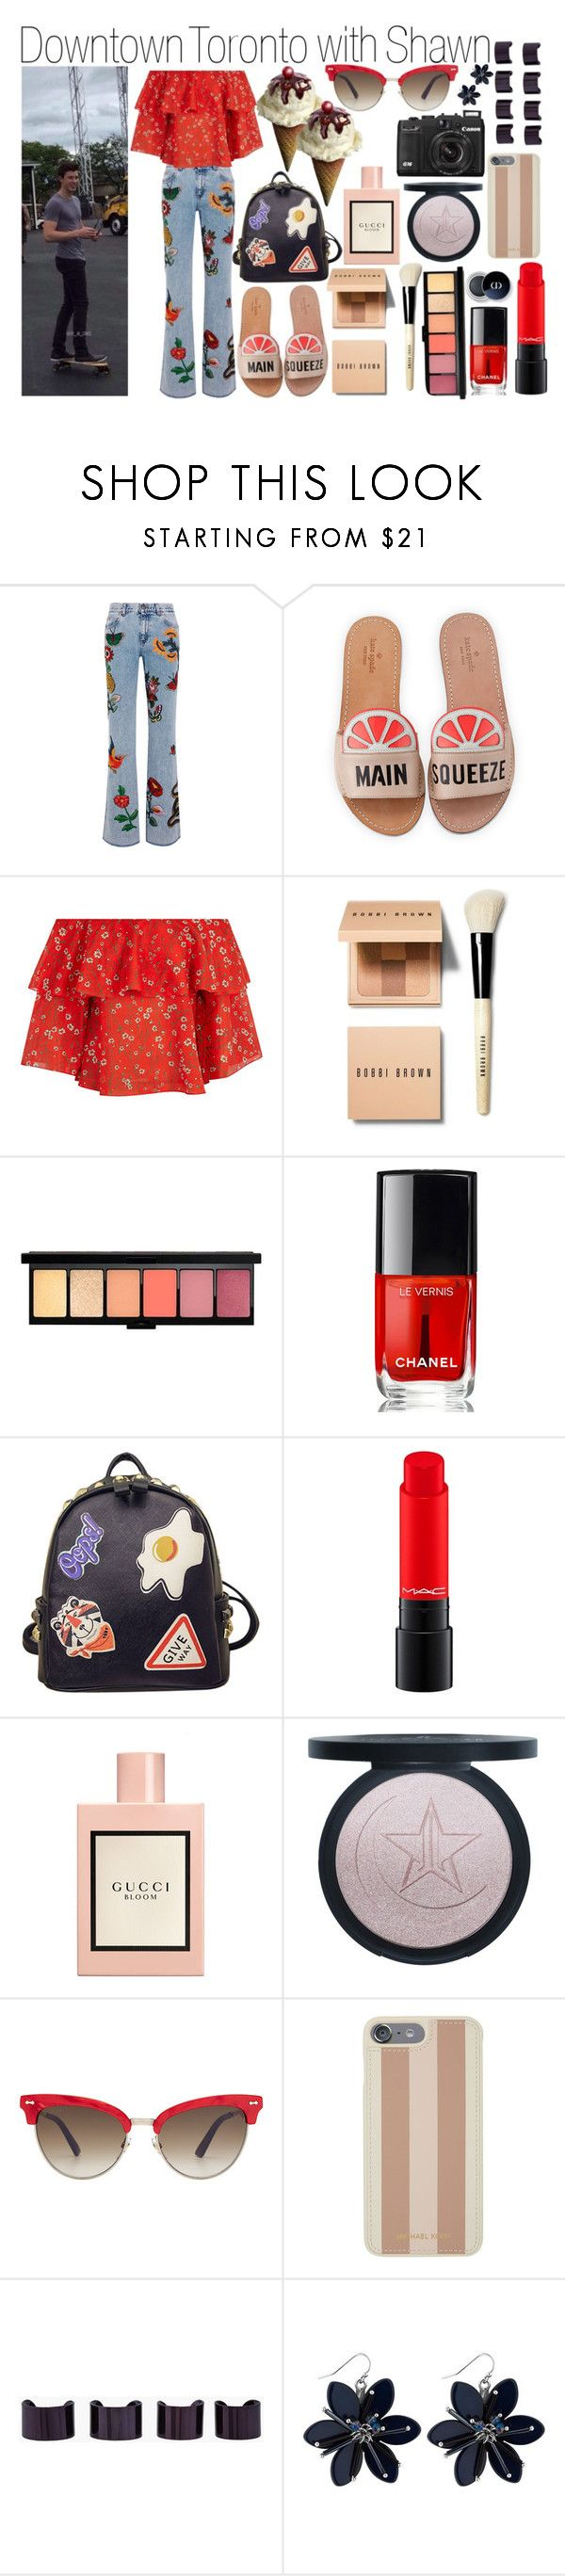 """Dowtown Toronto with Shawn"" by yanatommo ❤ liked on Polyvore featuring Gucci, Kate Spade, Alice + Olivia, Bobbi Brown Cosmetics, Chanel, WithChic, Michael Kors and Maison Margiela"